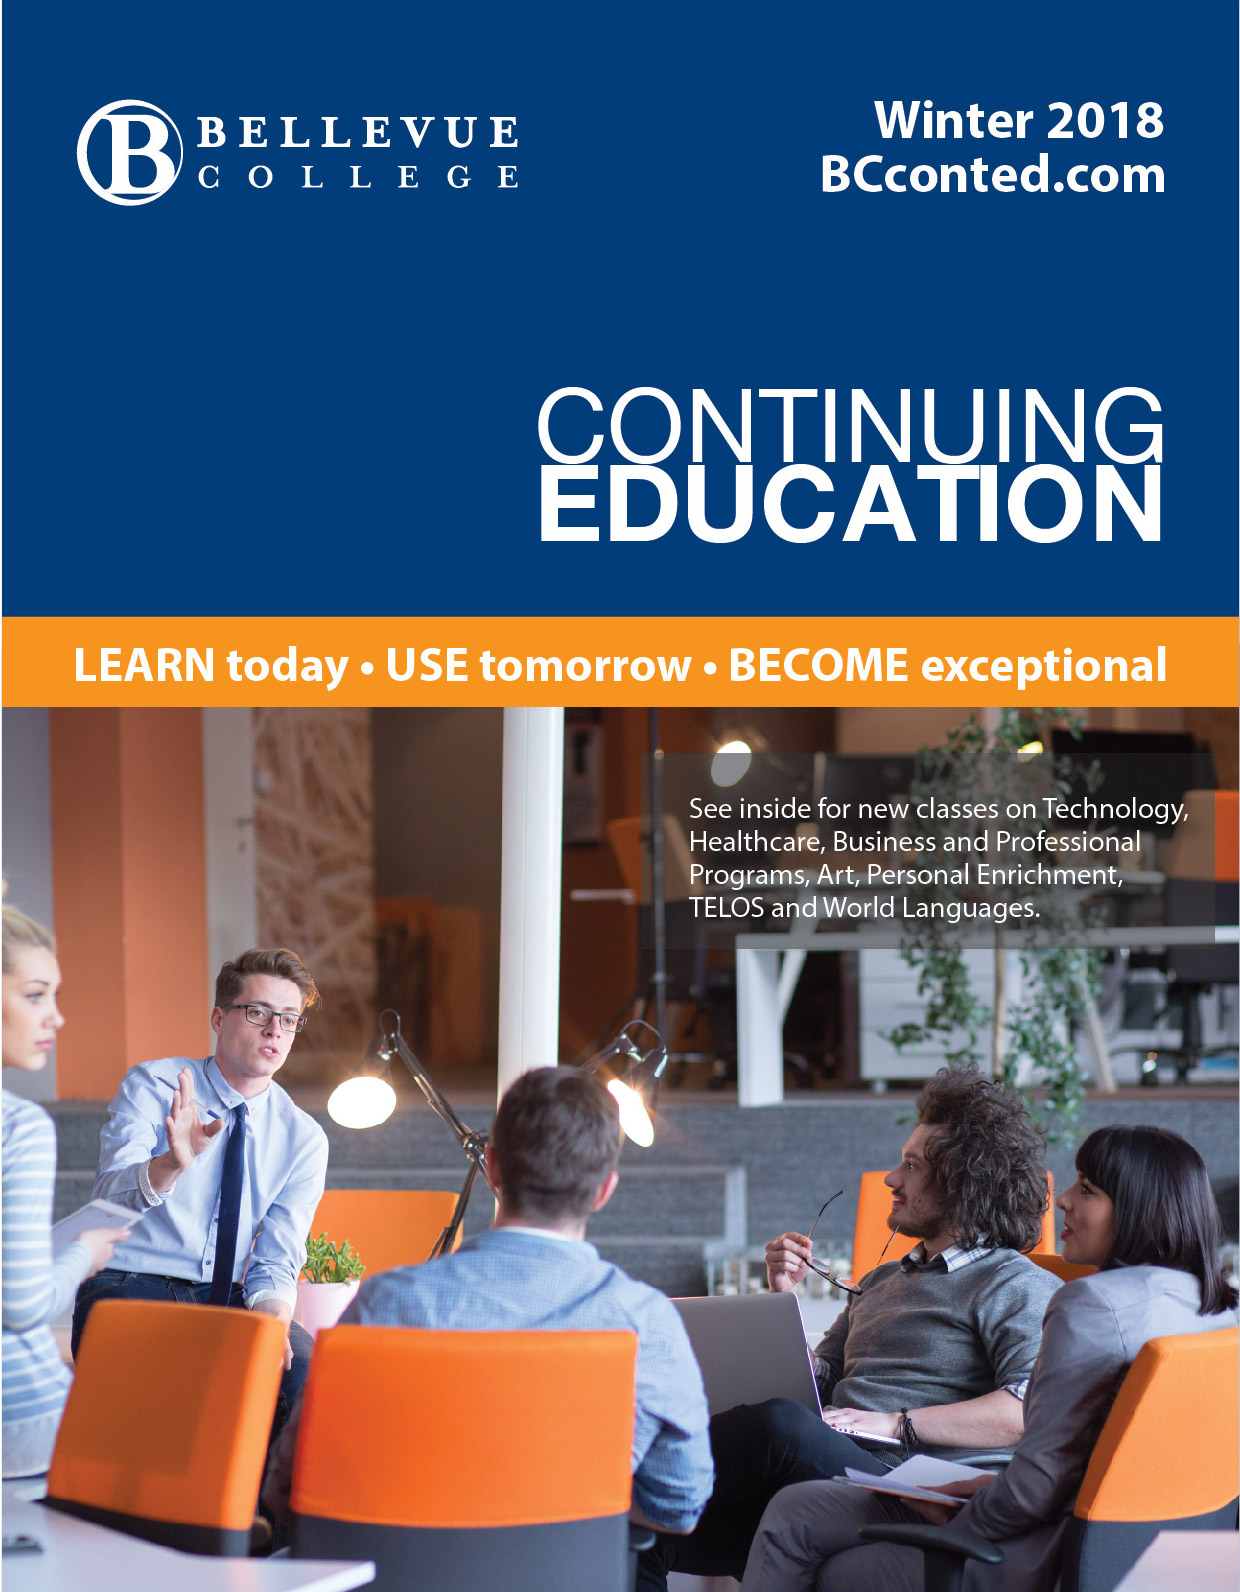 Bellevue College Continuing Education